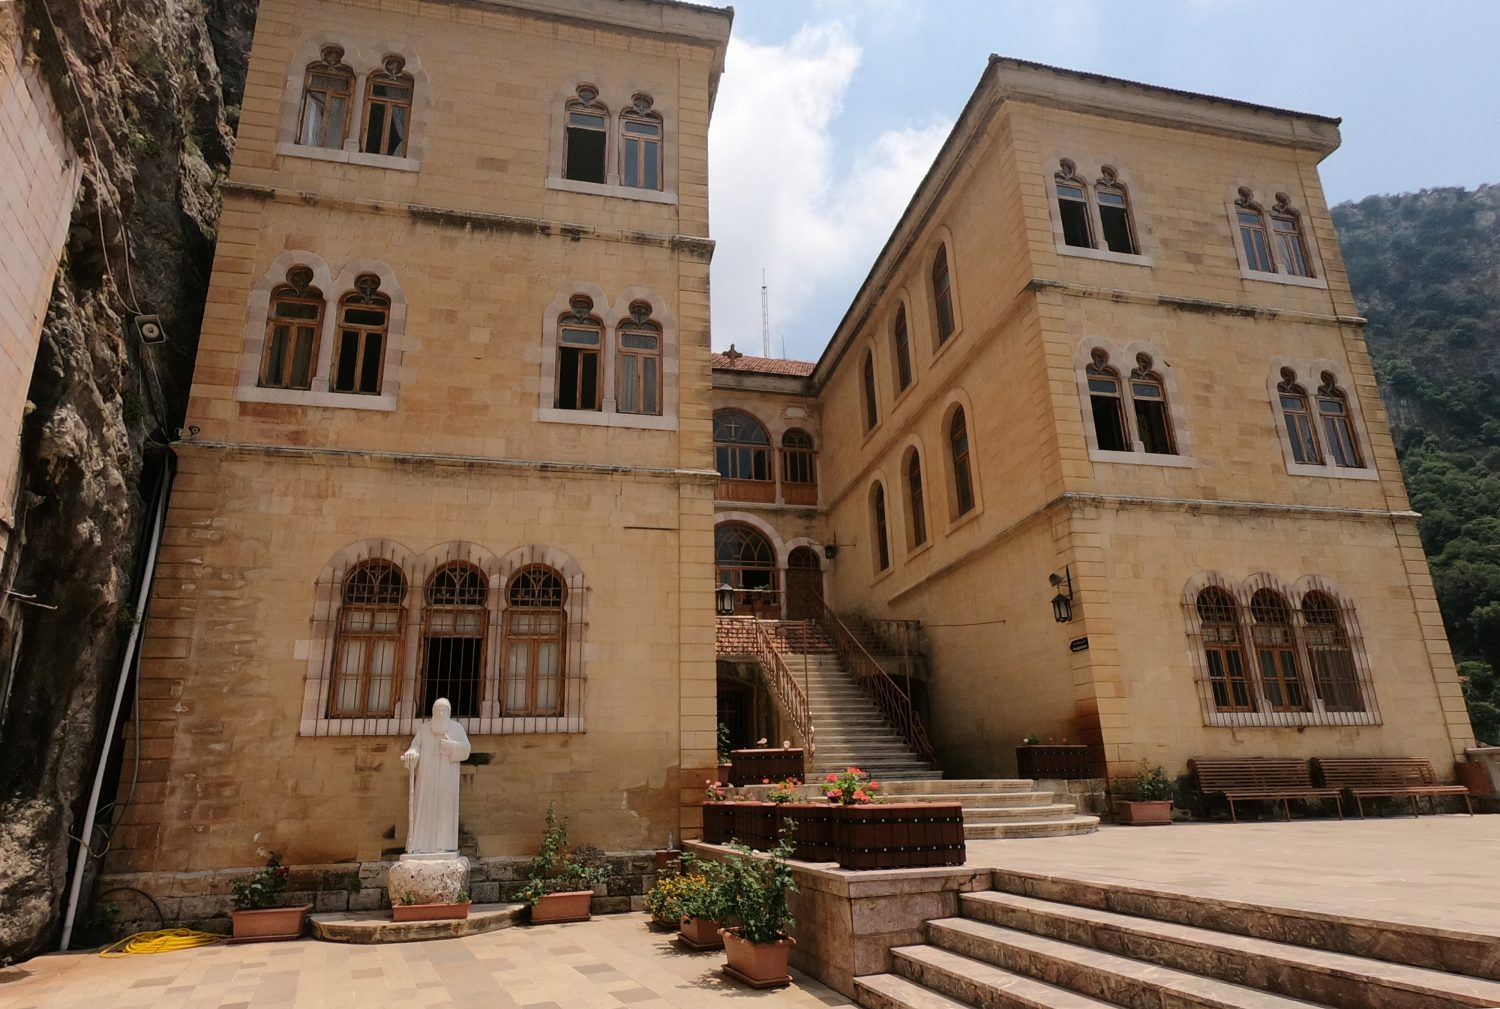 A view of the Monastery of Saint Anthony of Qozhaya in the heart of the Qadisha valley, in Zgharta district, LebanonJune 23, 2019. REUTERS/Imad Creidi